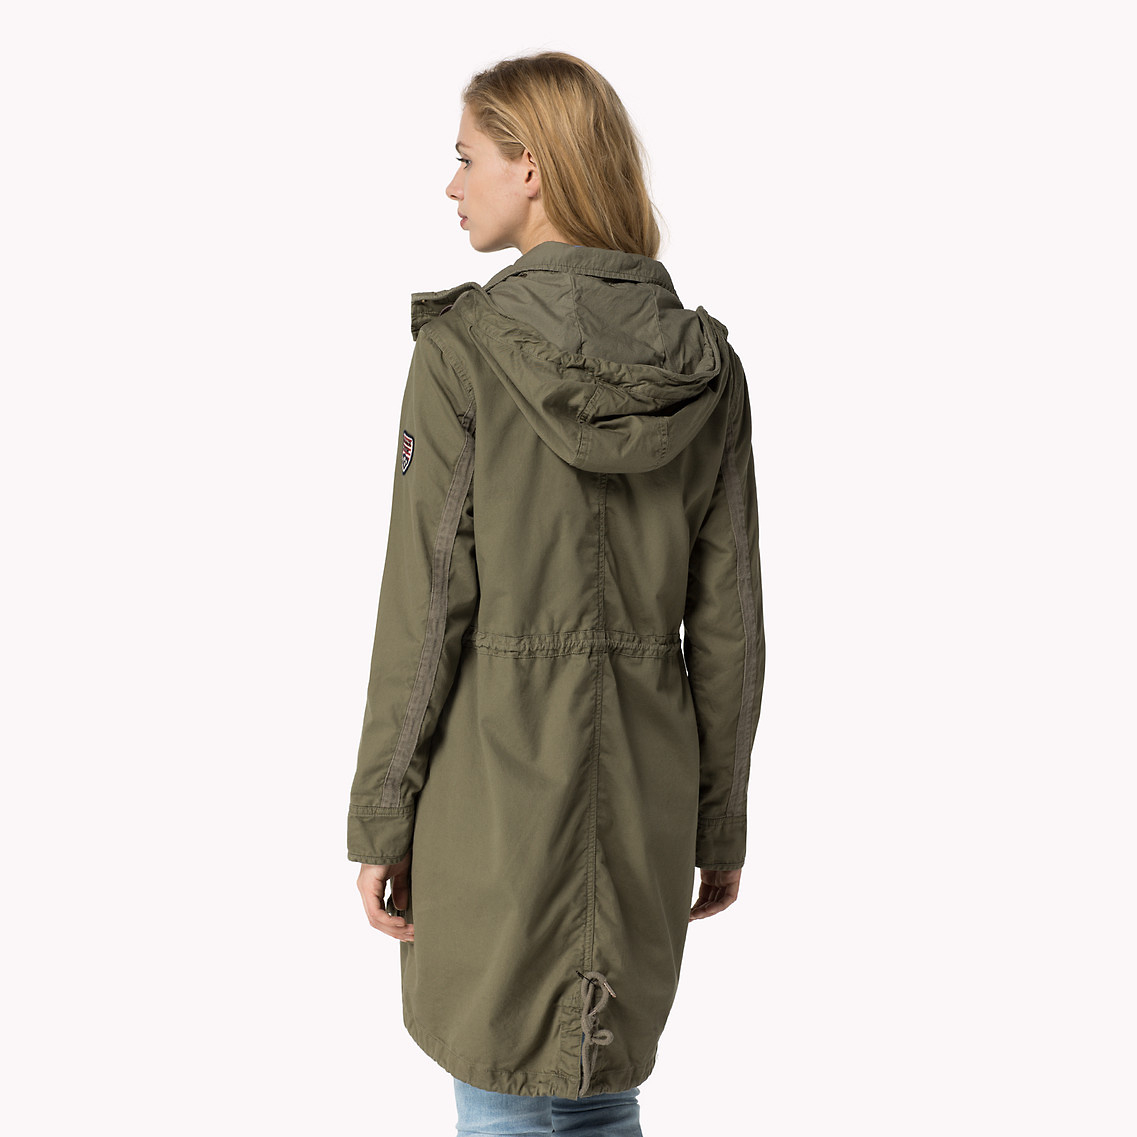 tommy hilfiger miranda cotton parka in green lyst. Black Bedroom Furniture Sets. Home Design Ideas